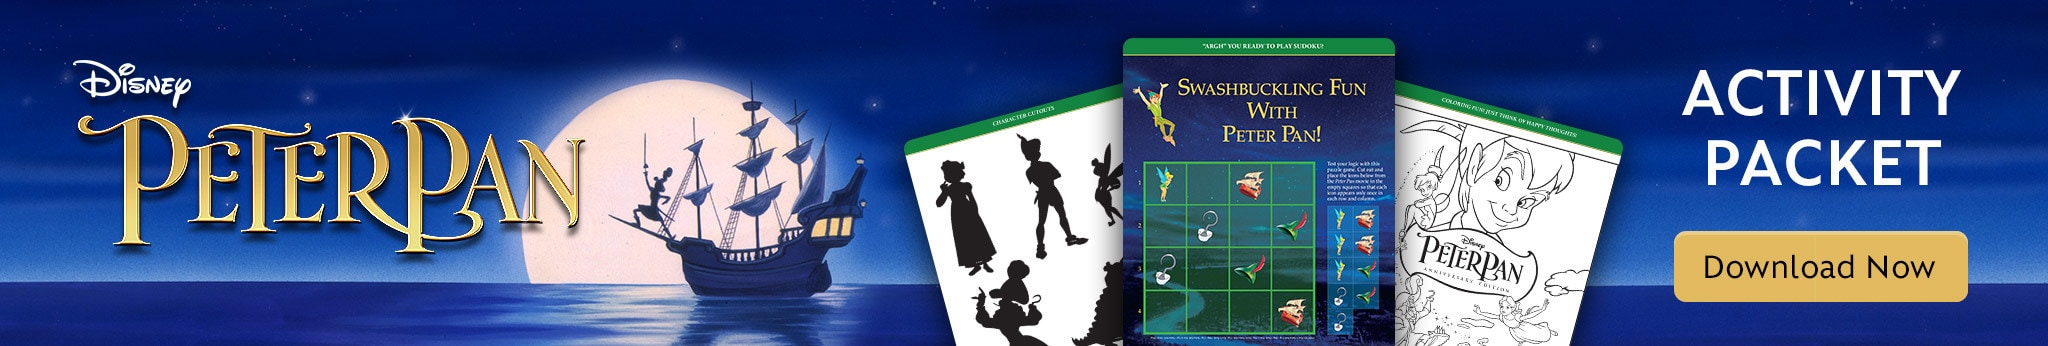 Peter Pan Activity Packet - Download Now